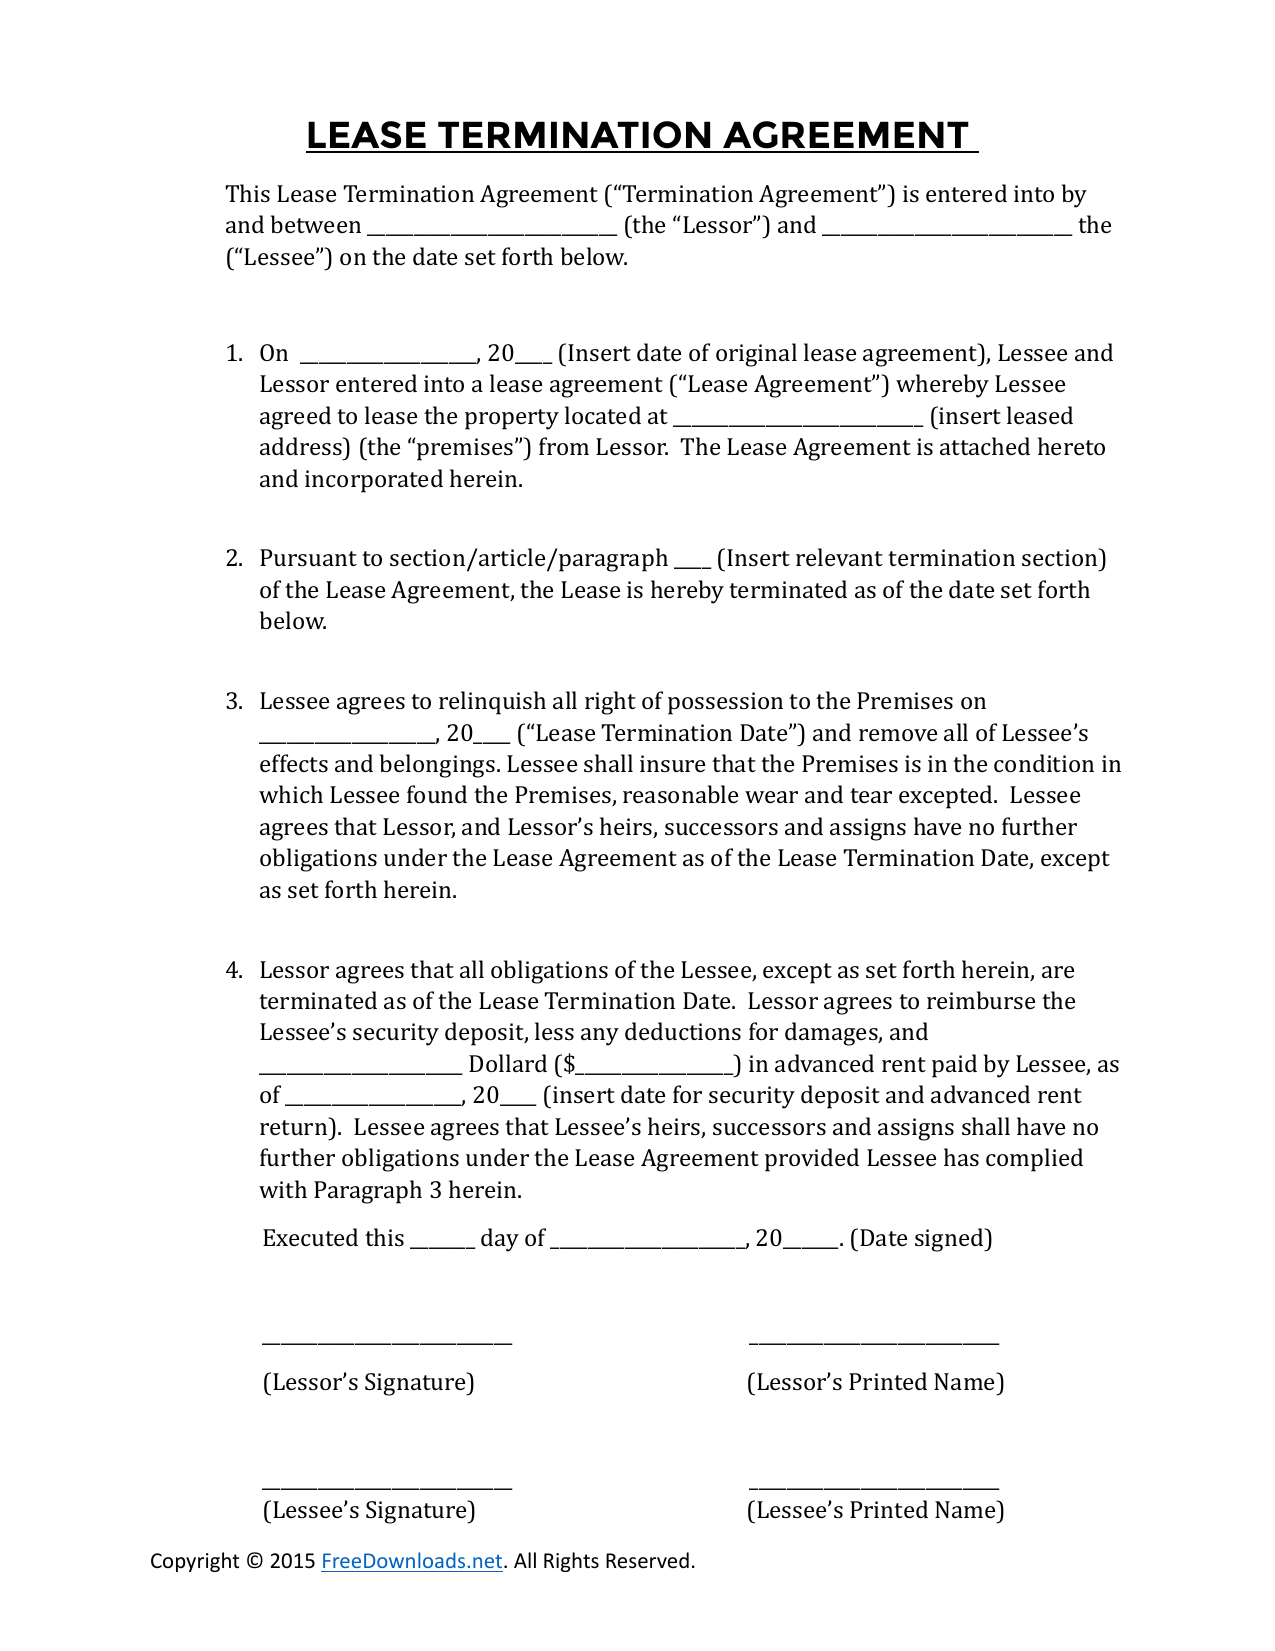 Download Early Residential Lease Termination Agreement Form Pdf